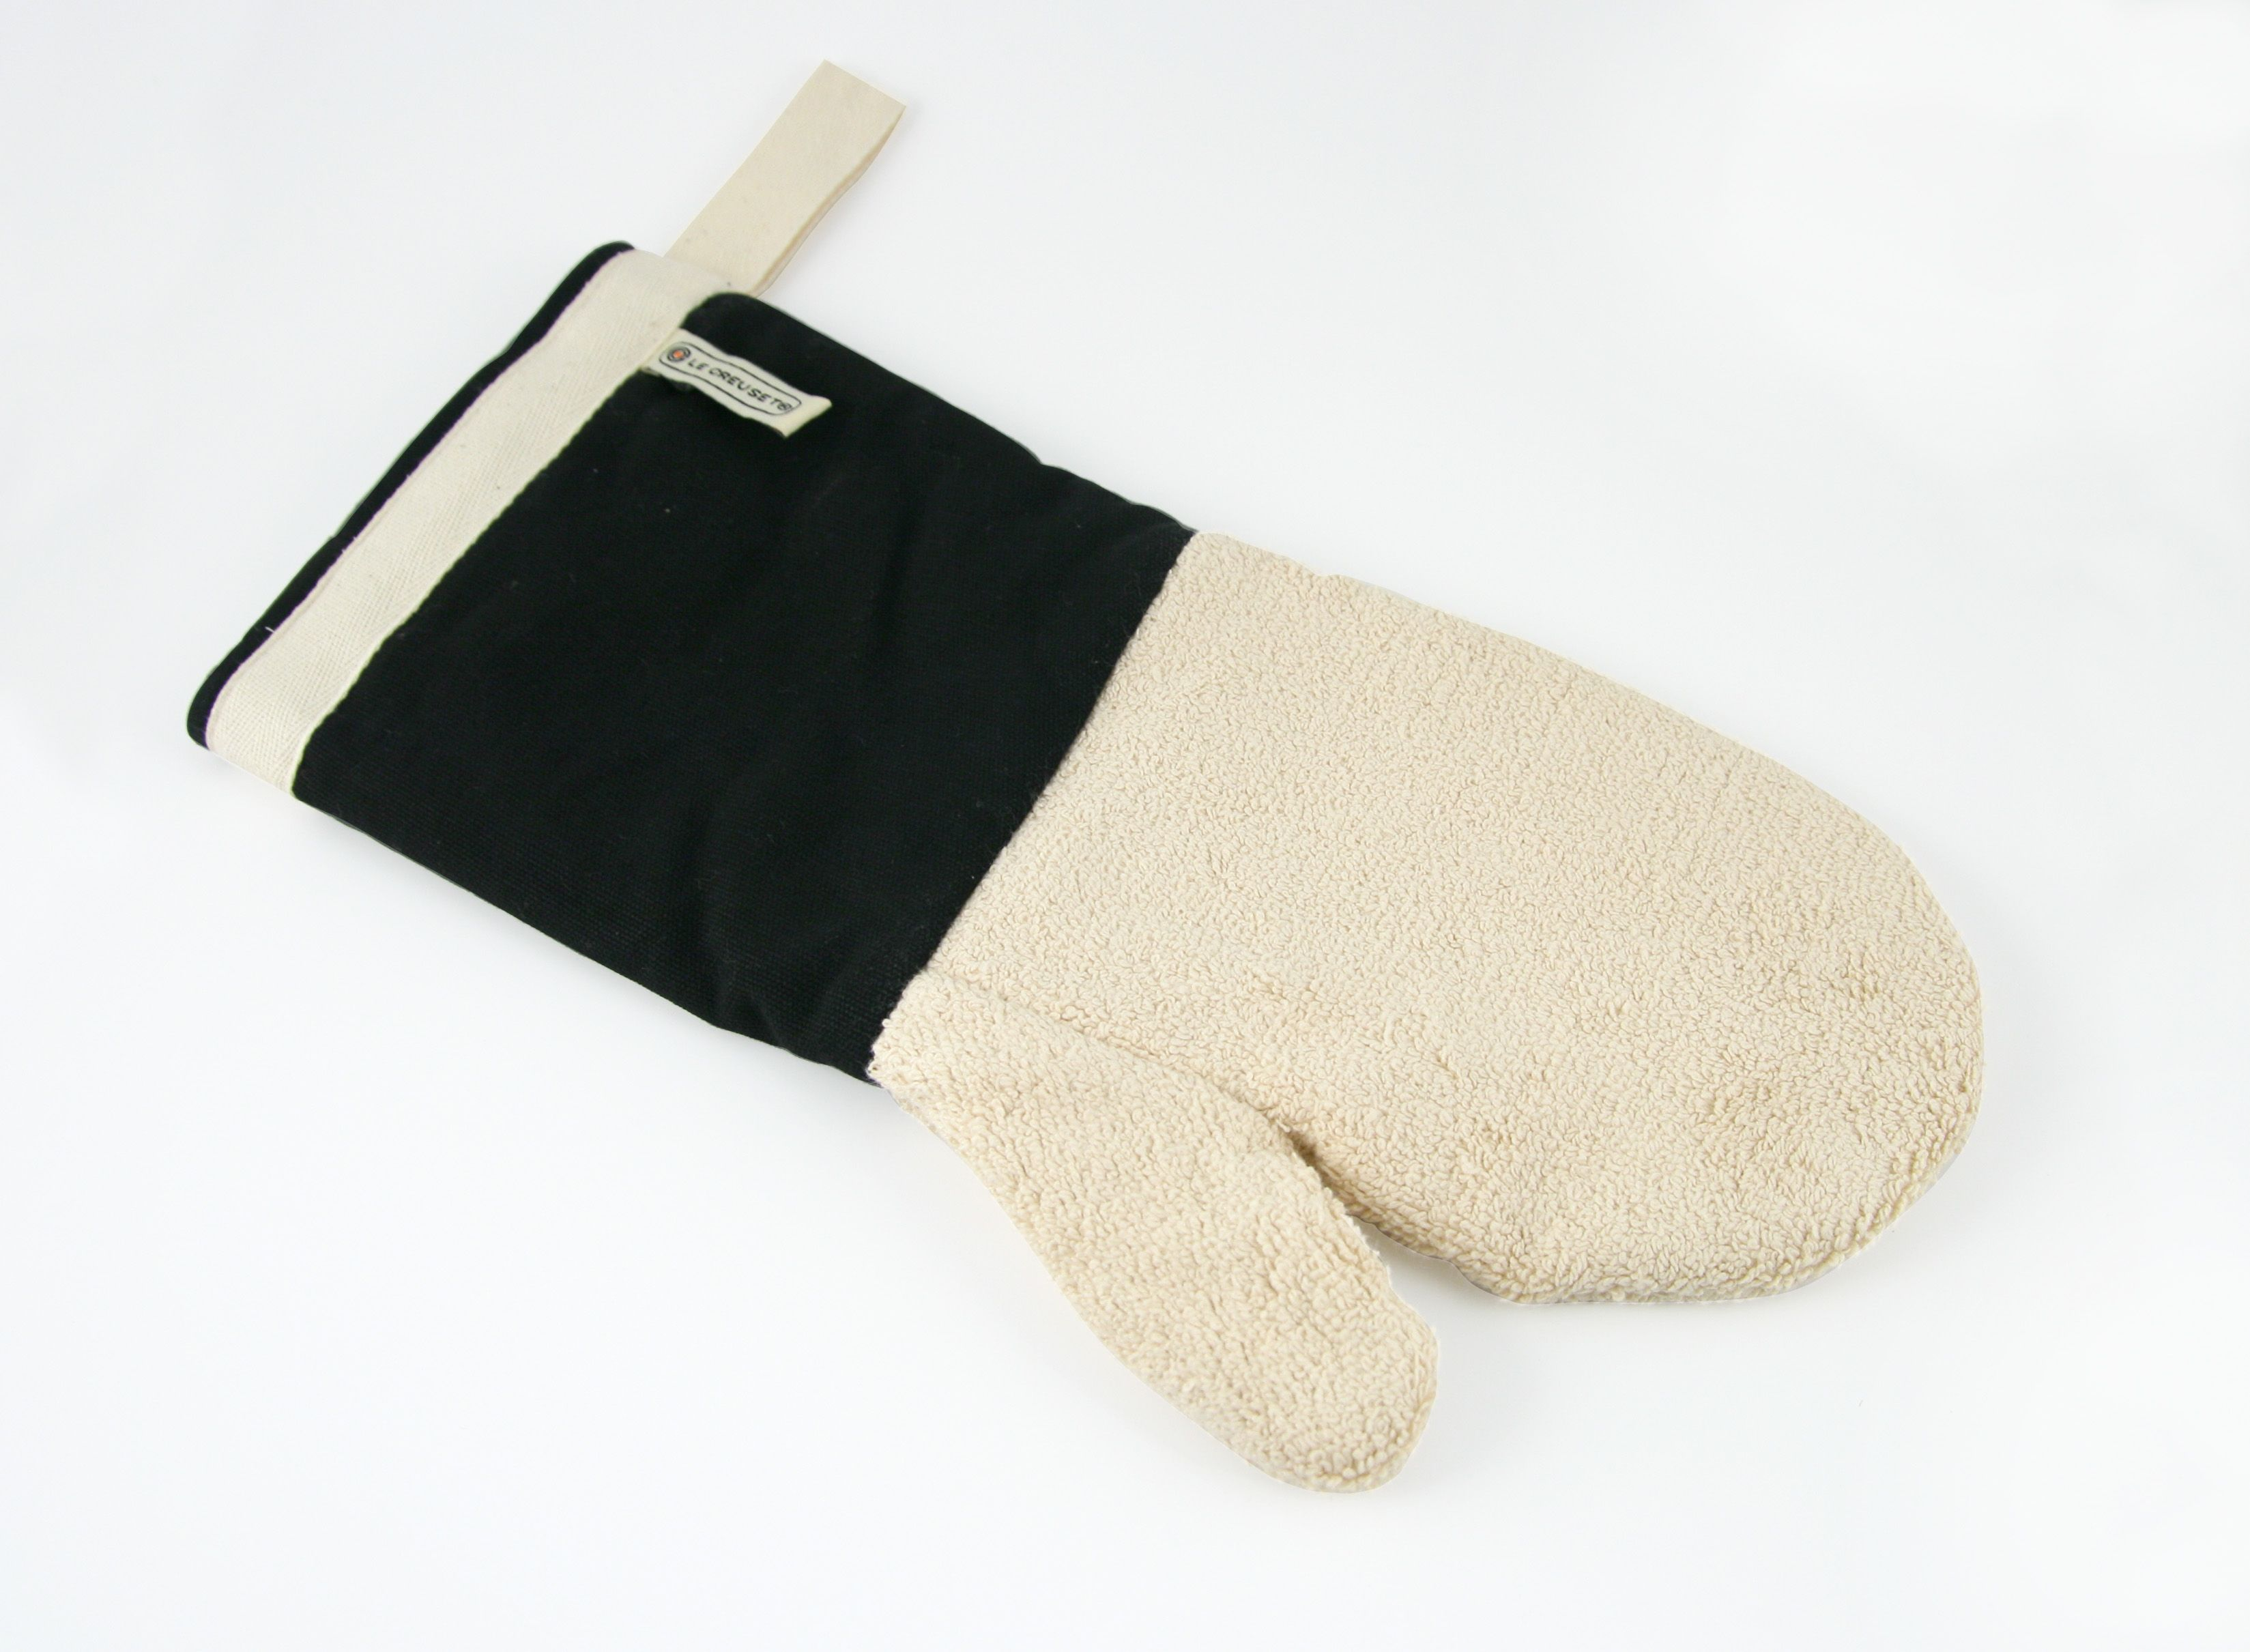 Image of Le Creuset 14 Oven Mitt Black